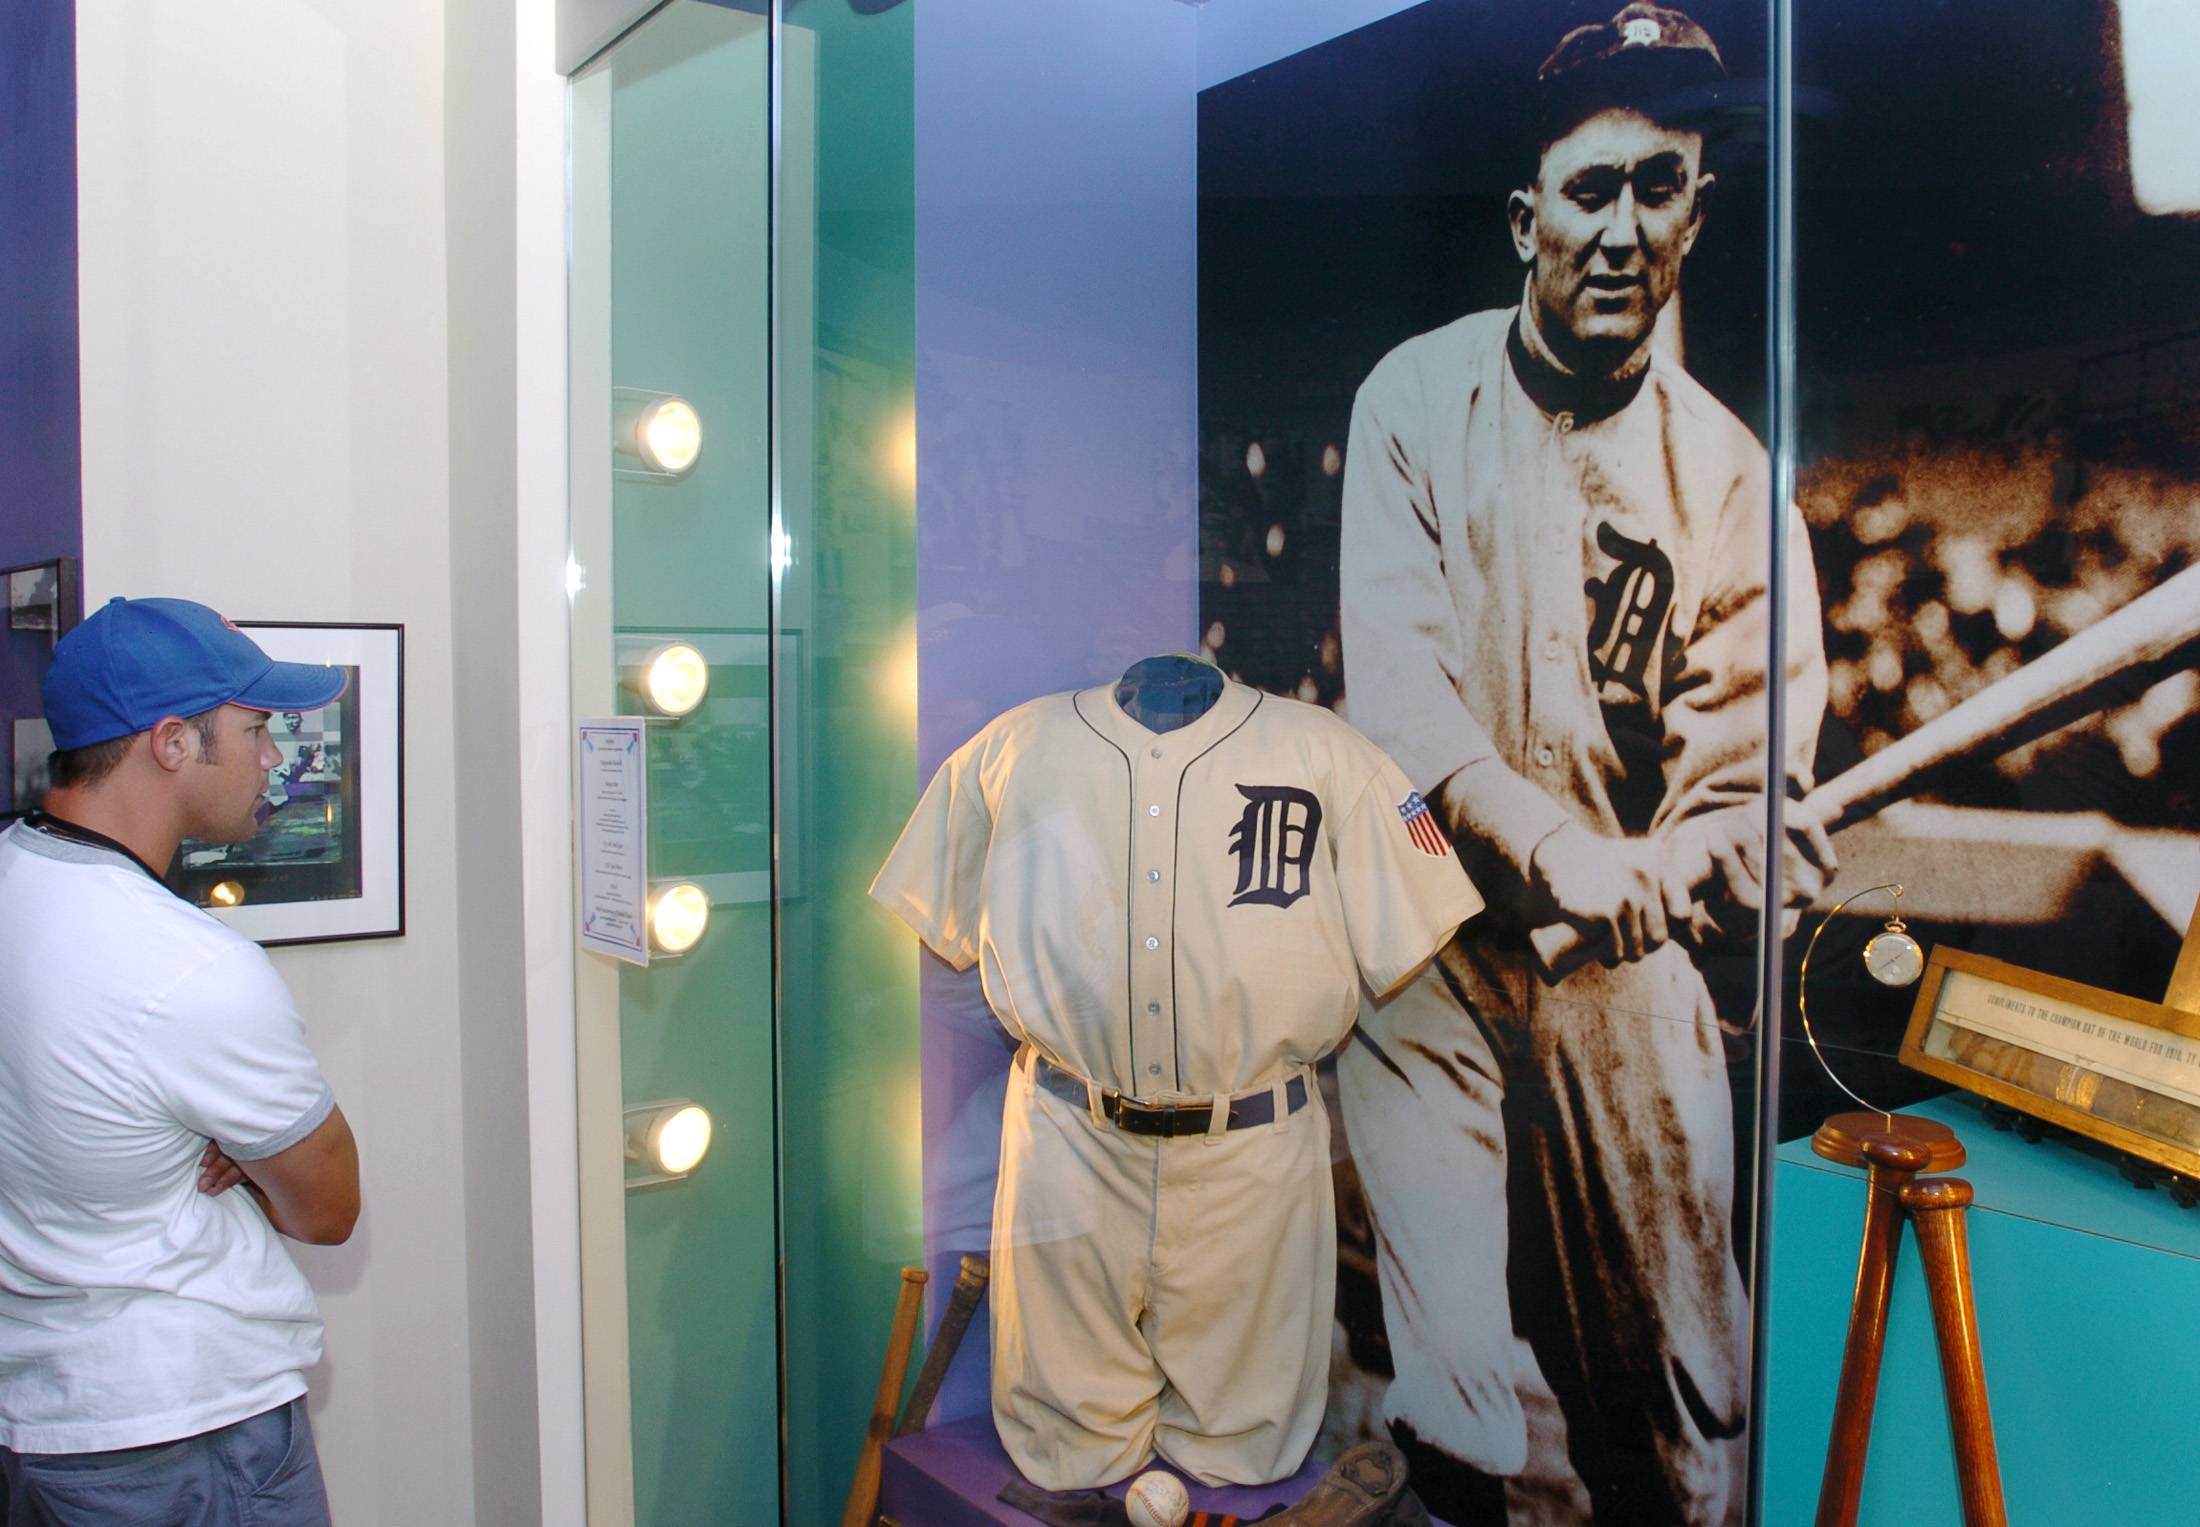 A fan looks at baseball memorabilia at the Ty Cobb Museum in Royston, Ga.